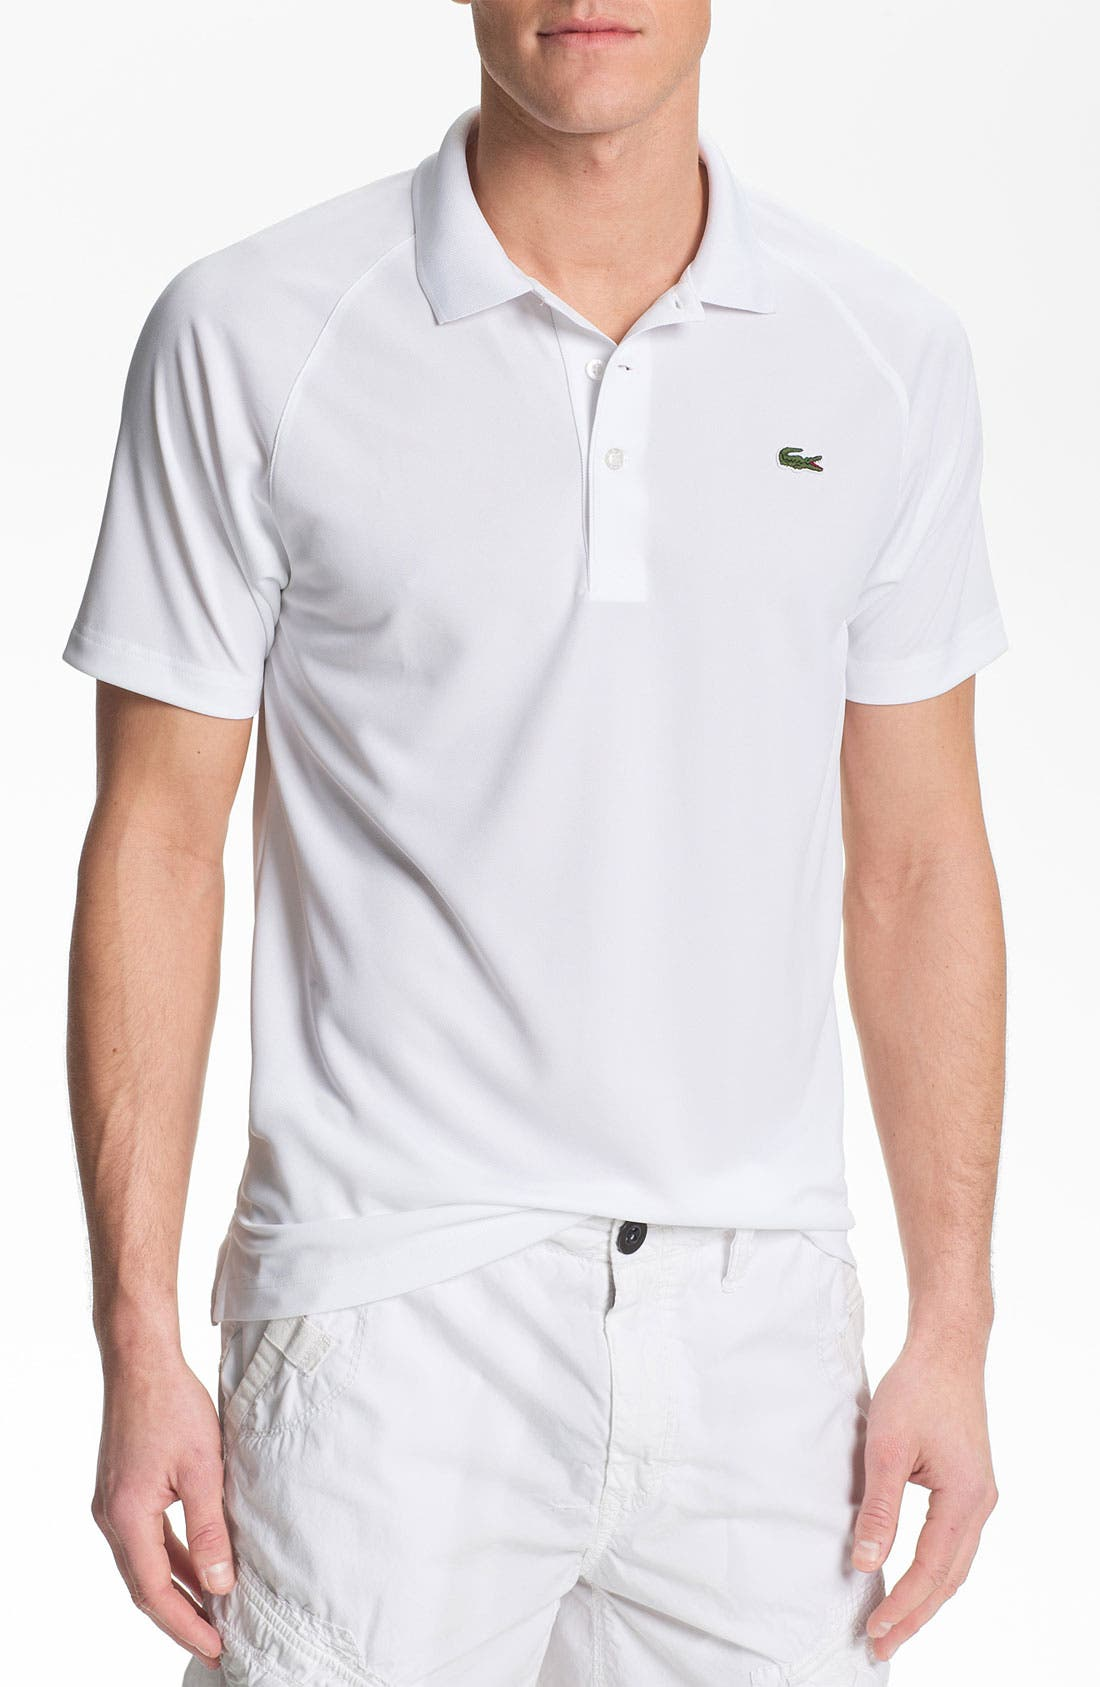 Alternate Image 1 Selected - Lacoste 'Super Dry' Dri-FIT Polo